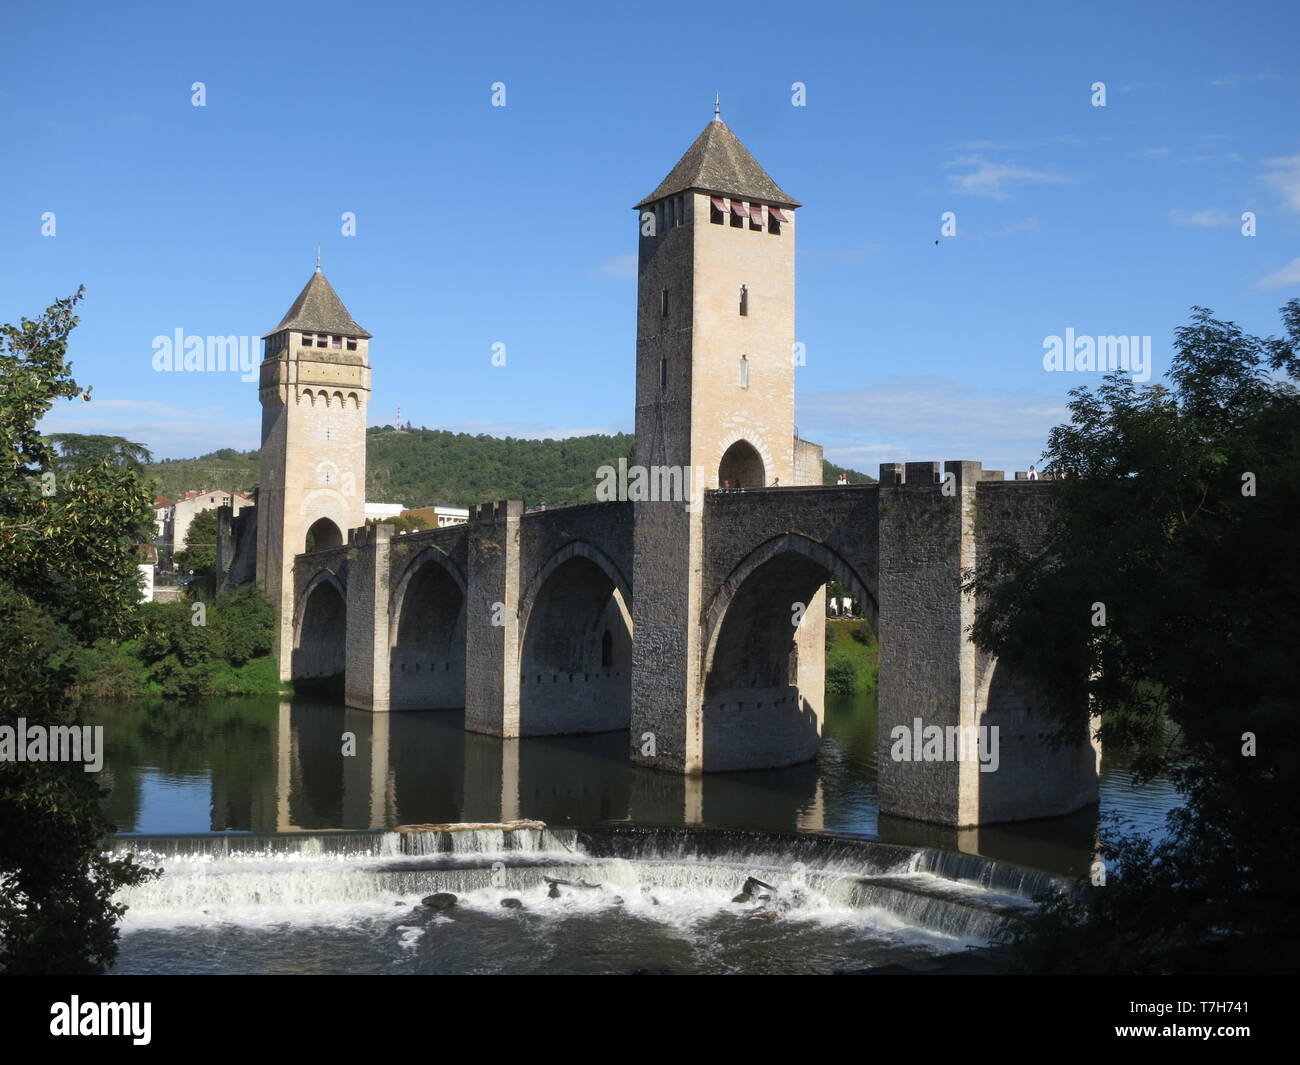 Town of Cahors along the GR 65, Via Podiensis, also know as Le Puy Route, in southern France. French part of the Camino de Santiago. - Stock Image